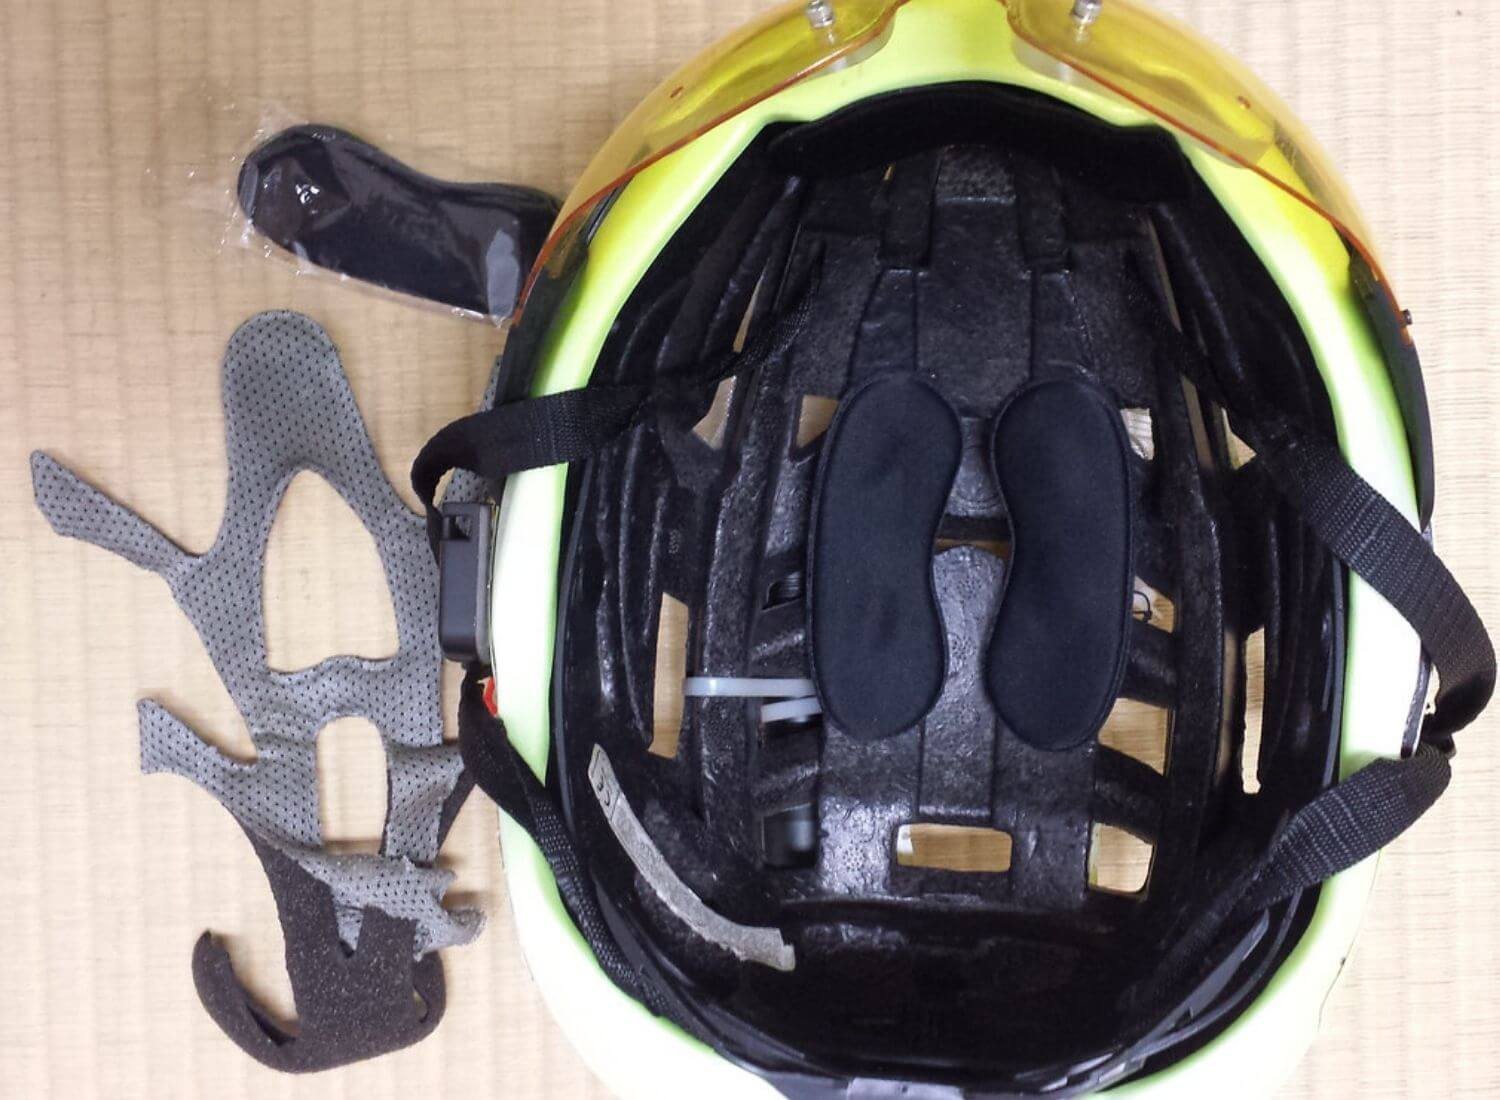 Does Helmet Padding Affect Helmet Safety?